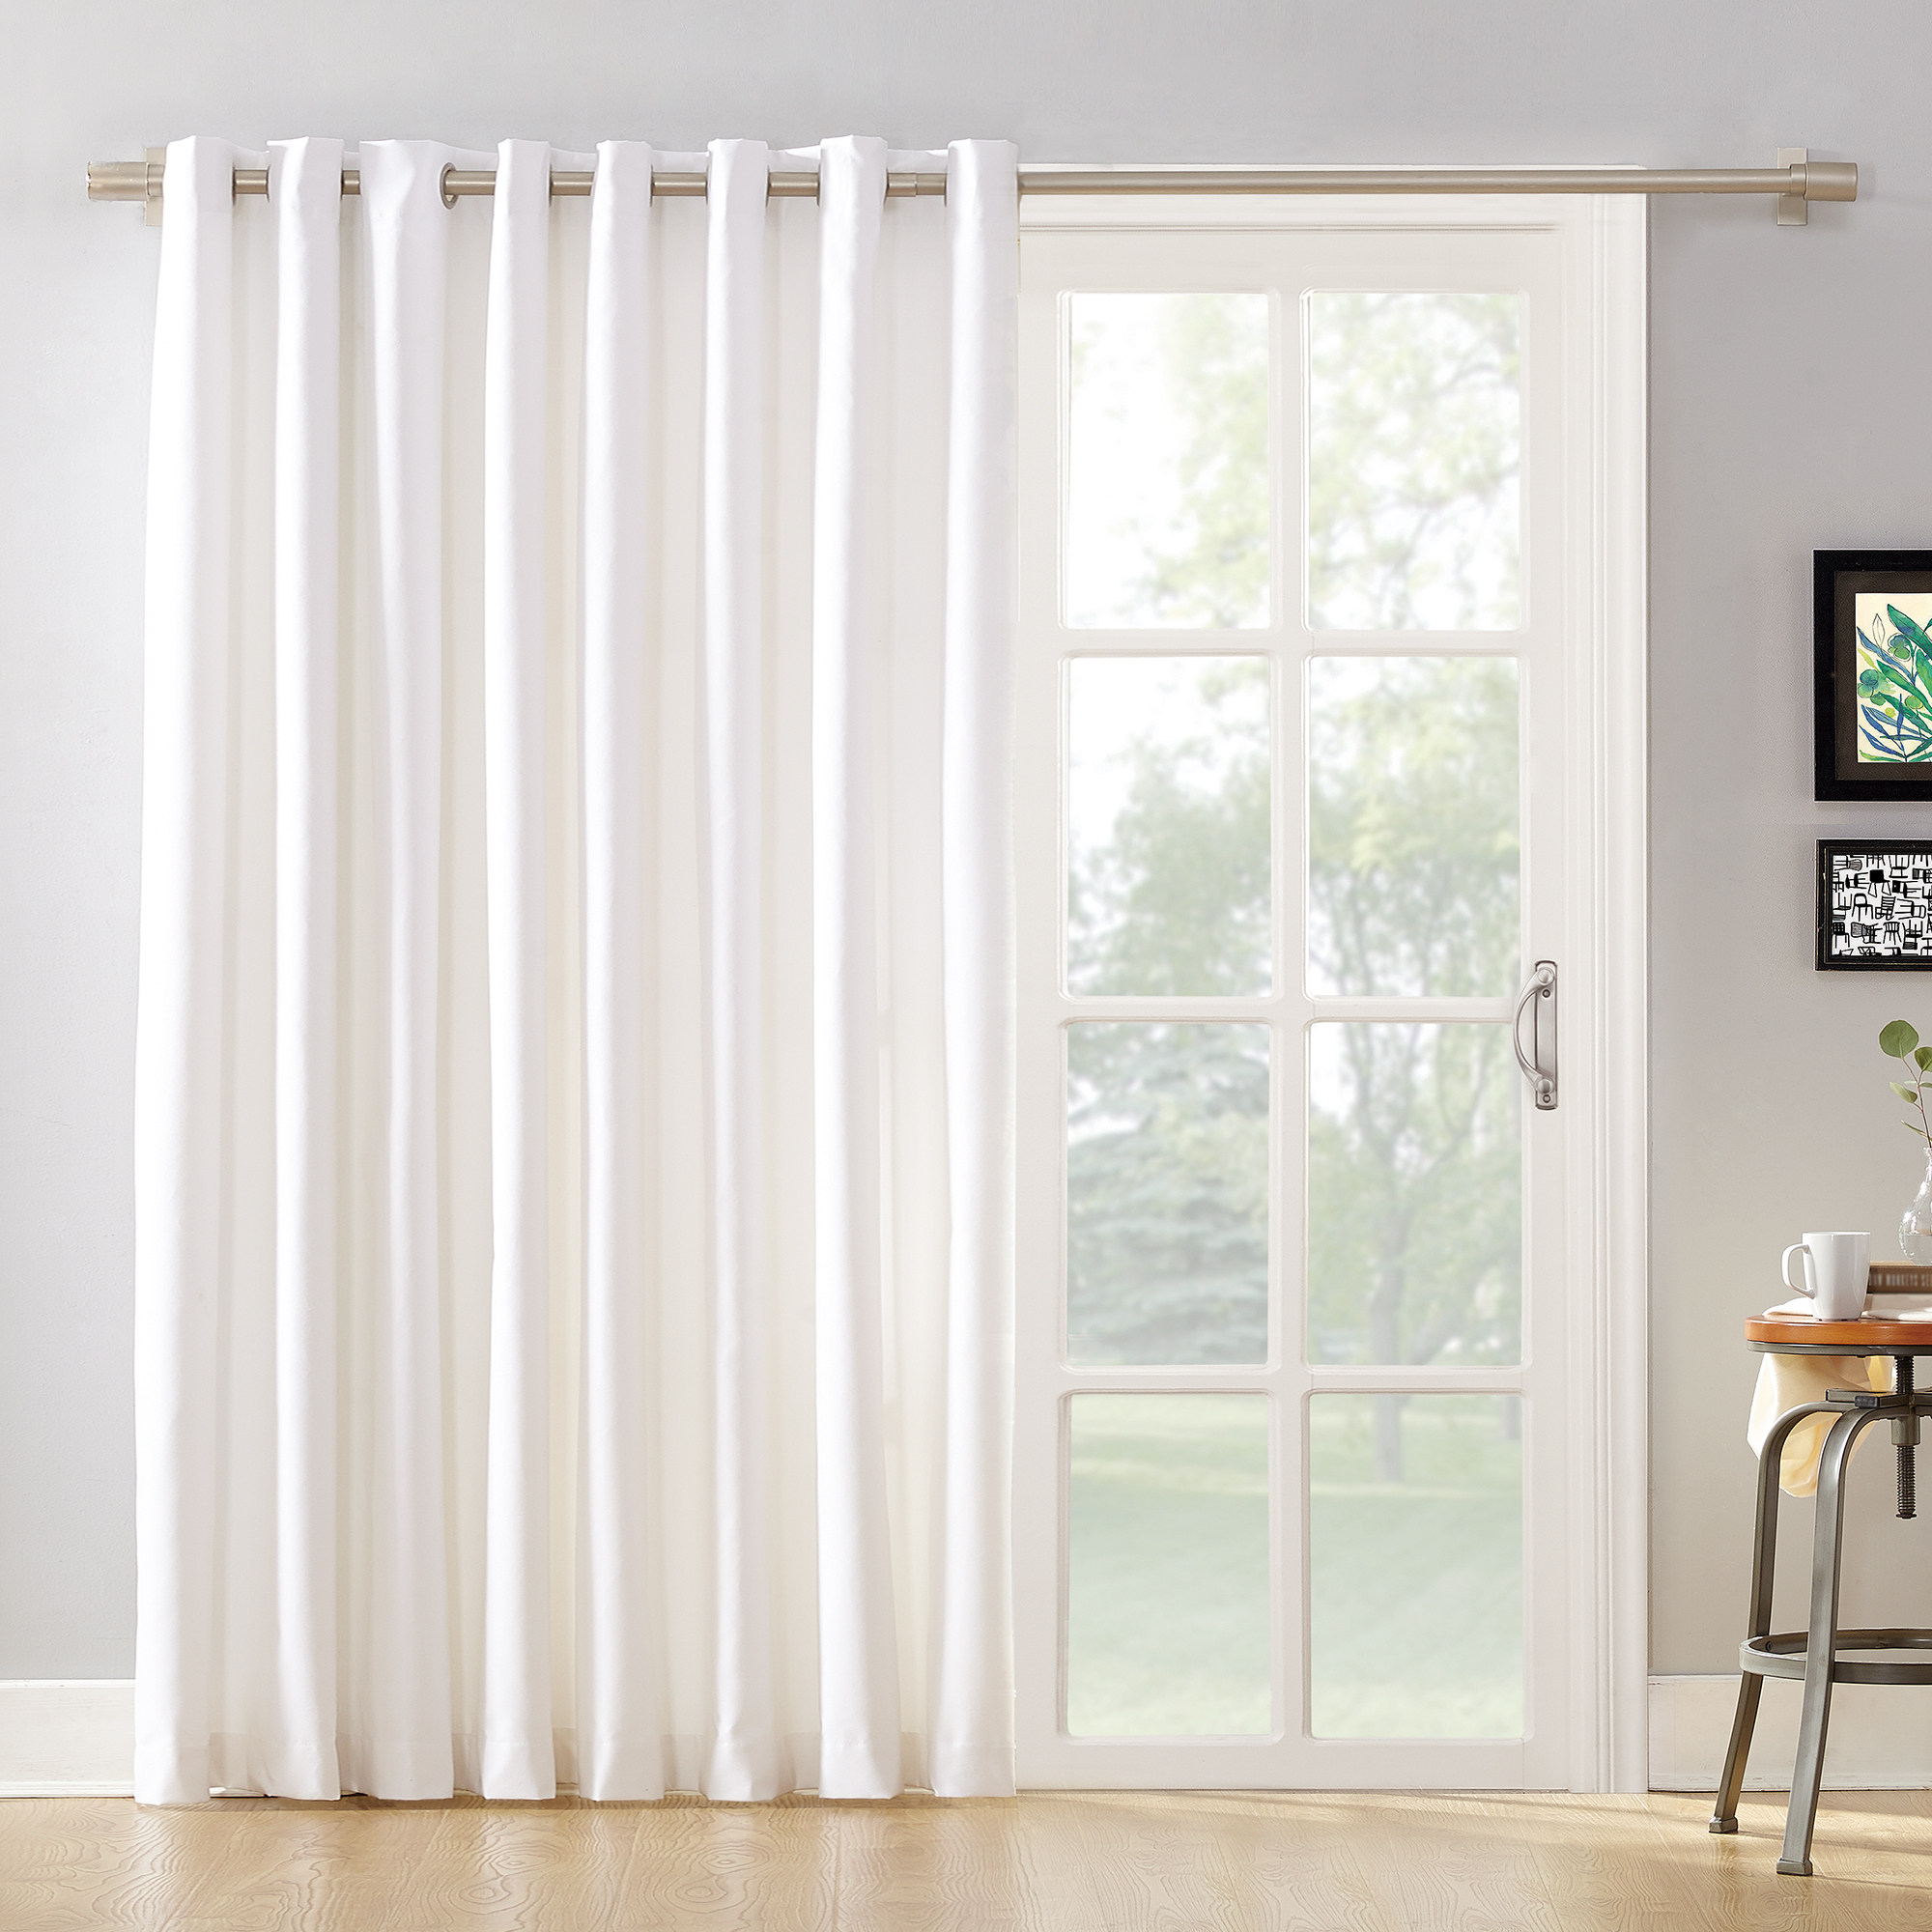 Mainstays Ava Sliding Glass Door Blackout Grommet Curtain Panel